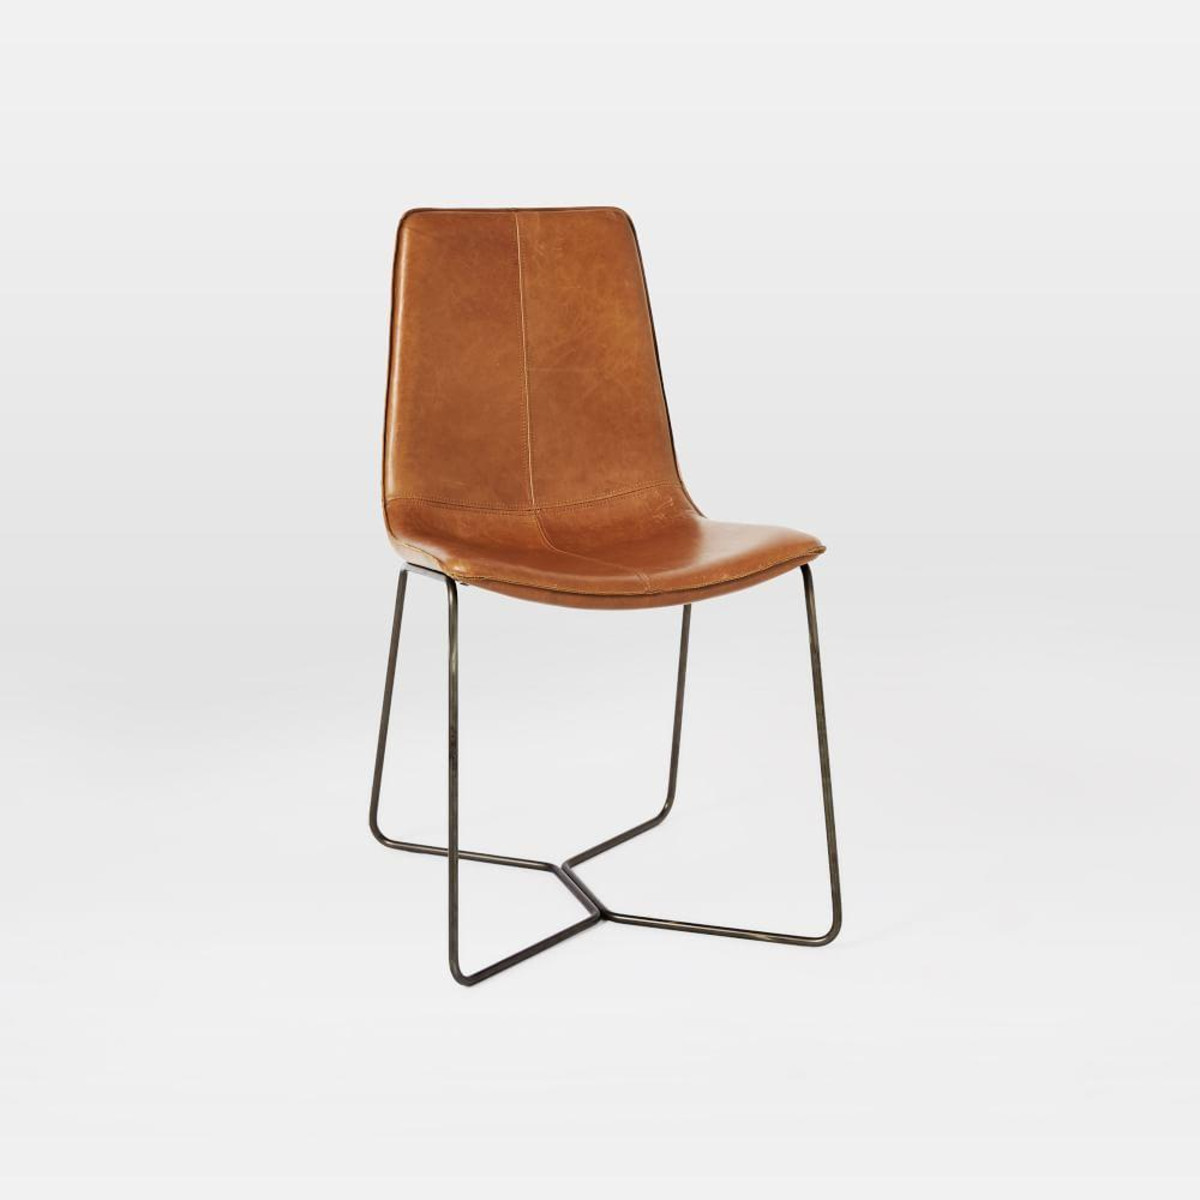 Best ideas about Leather Dining Chair . Save or Pin Leather Slope Dining Chair Now.